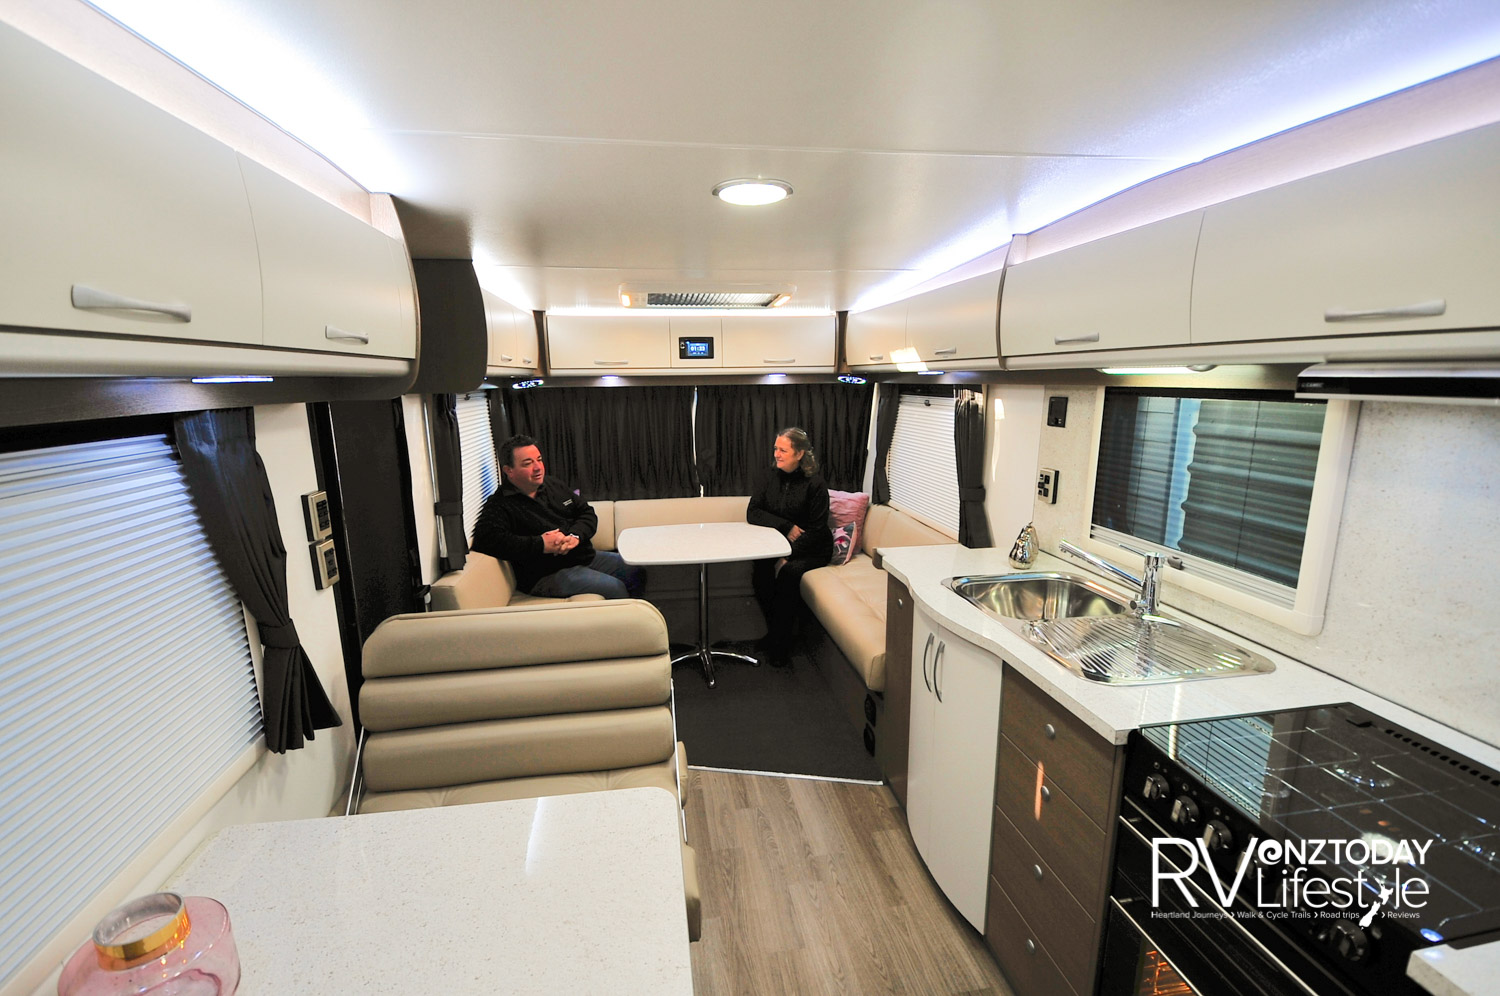 This is a spacious vehicle at nine metres, with an airy U-shaped rear lounge and a separate dinette area with a double facing seat – a great idea and use of seating space. There is carpet in the living area for warmth and comfort, but vinyl in the entrance and work space area as far as the bedroom. The leather upholstery is luxurious. The windows have fly-screens and pull-up shades, shades, these models are also fitted with quality curtains. A 24˝ Smart TV is also fitted in this area.